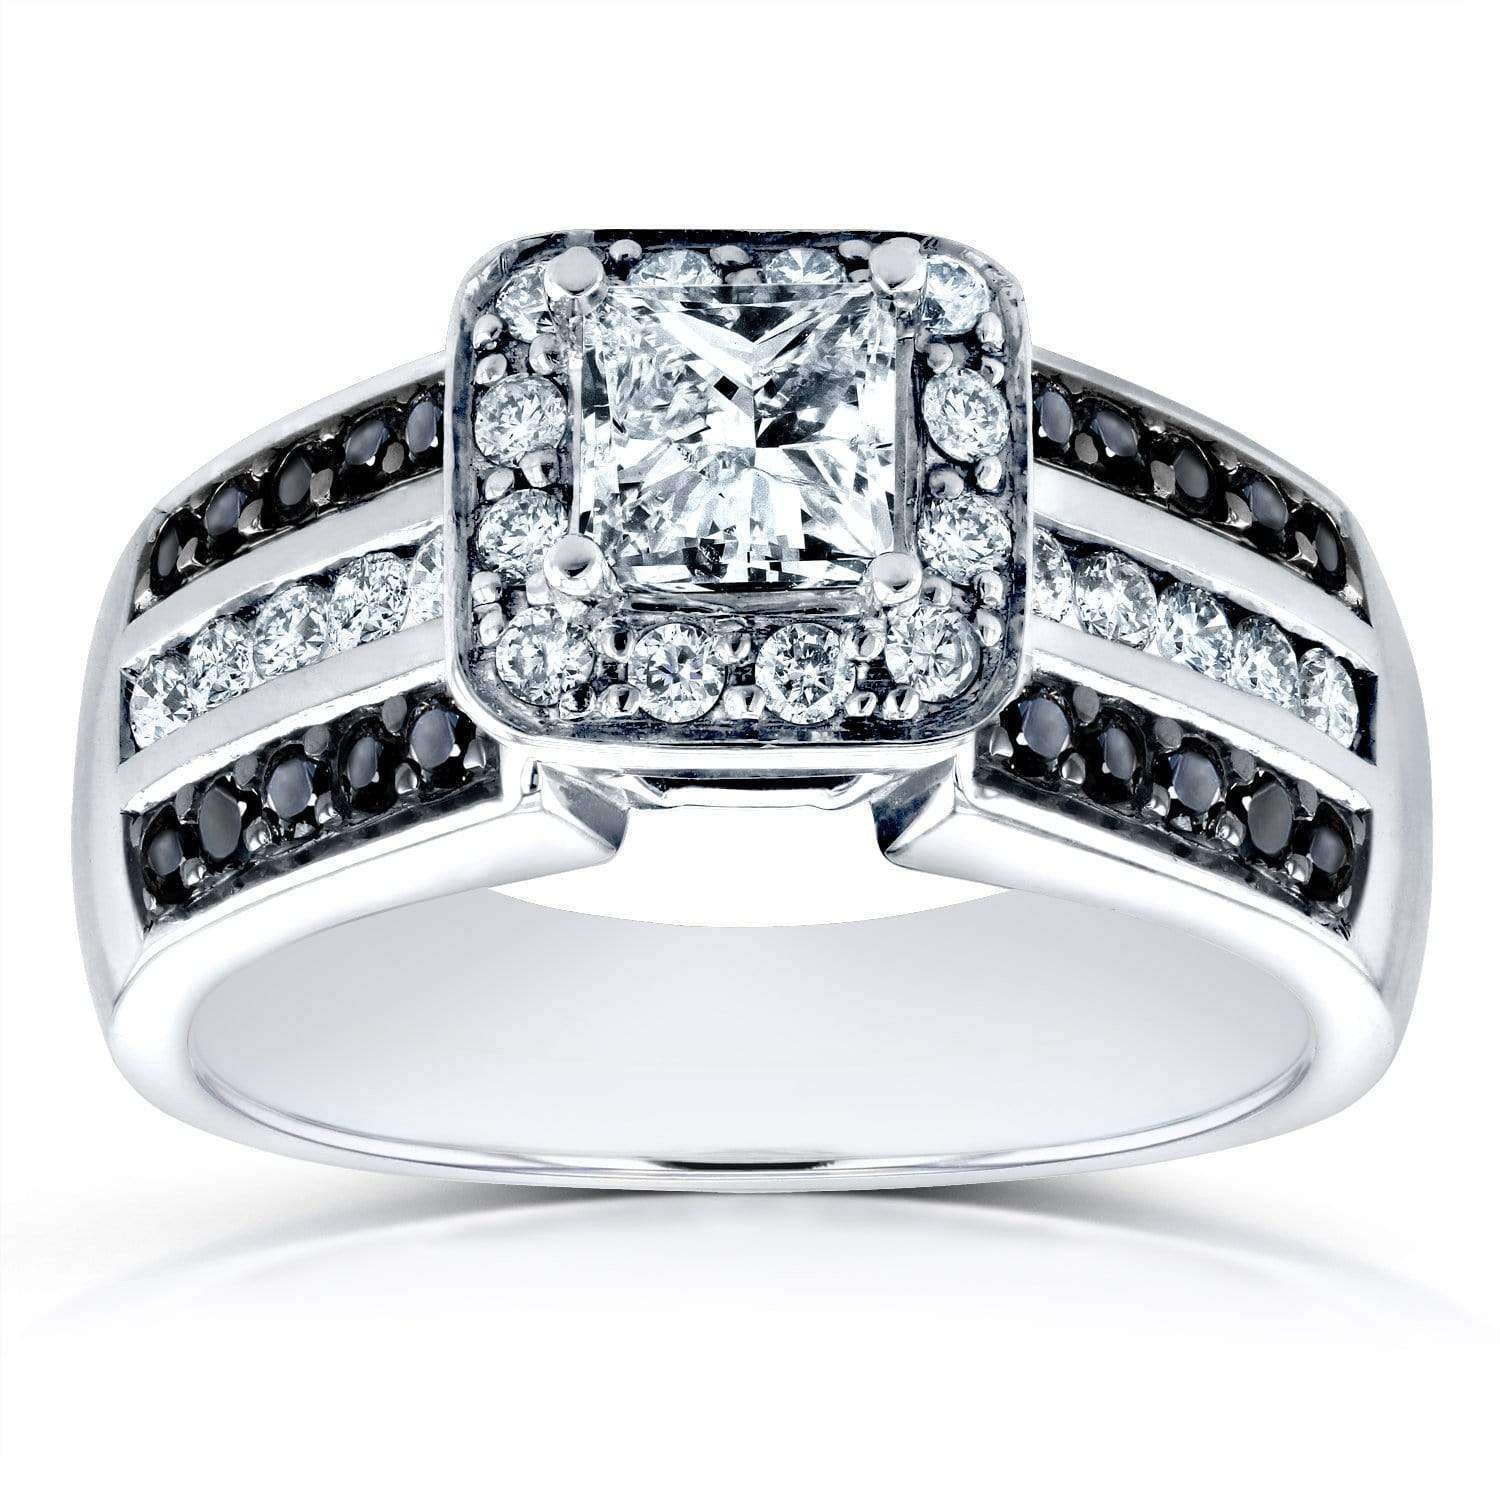 Best Three-Row Princess White and Black Diamond Halo Engagement Ring 1 CTW in 14k White Gold - 5